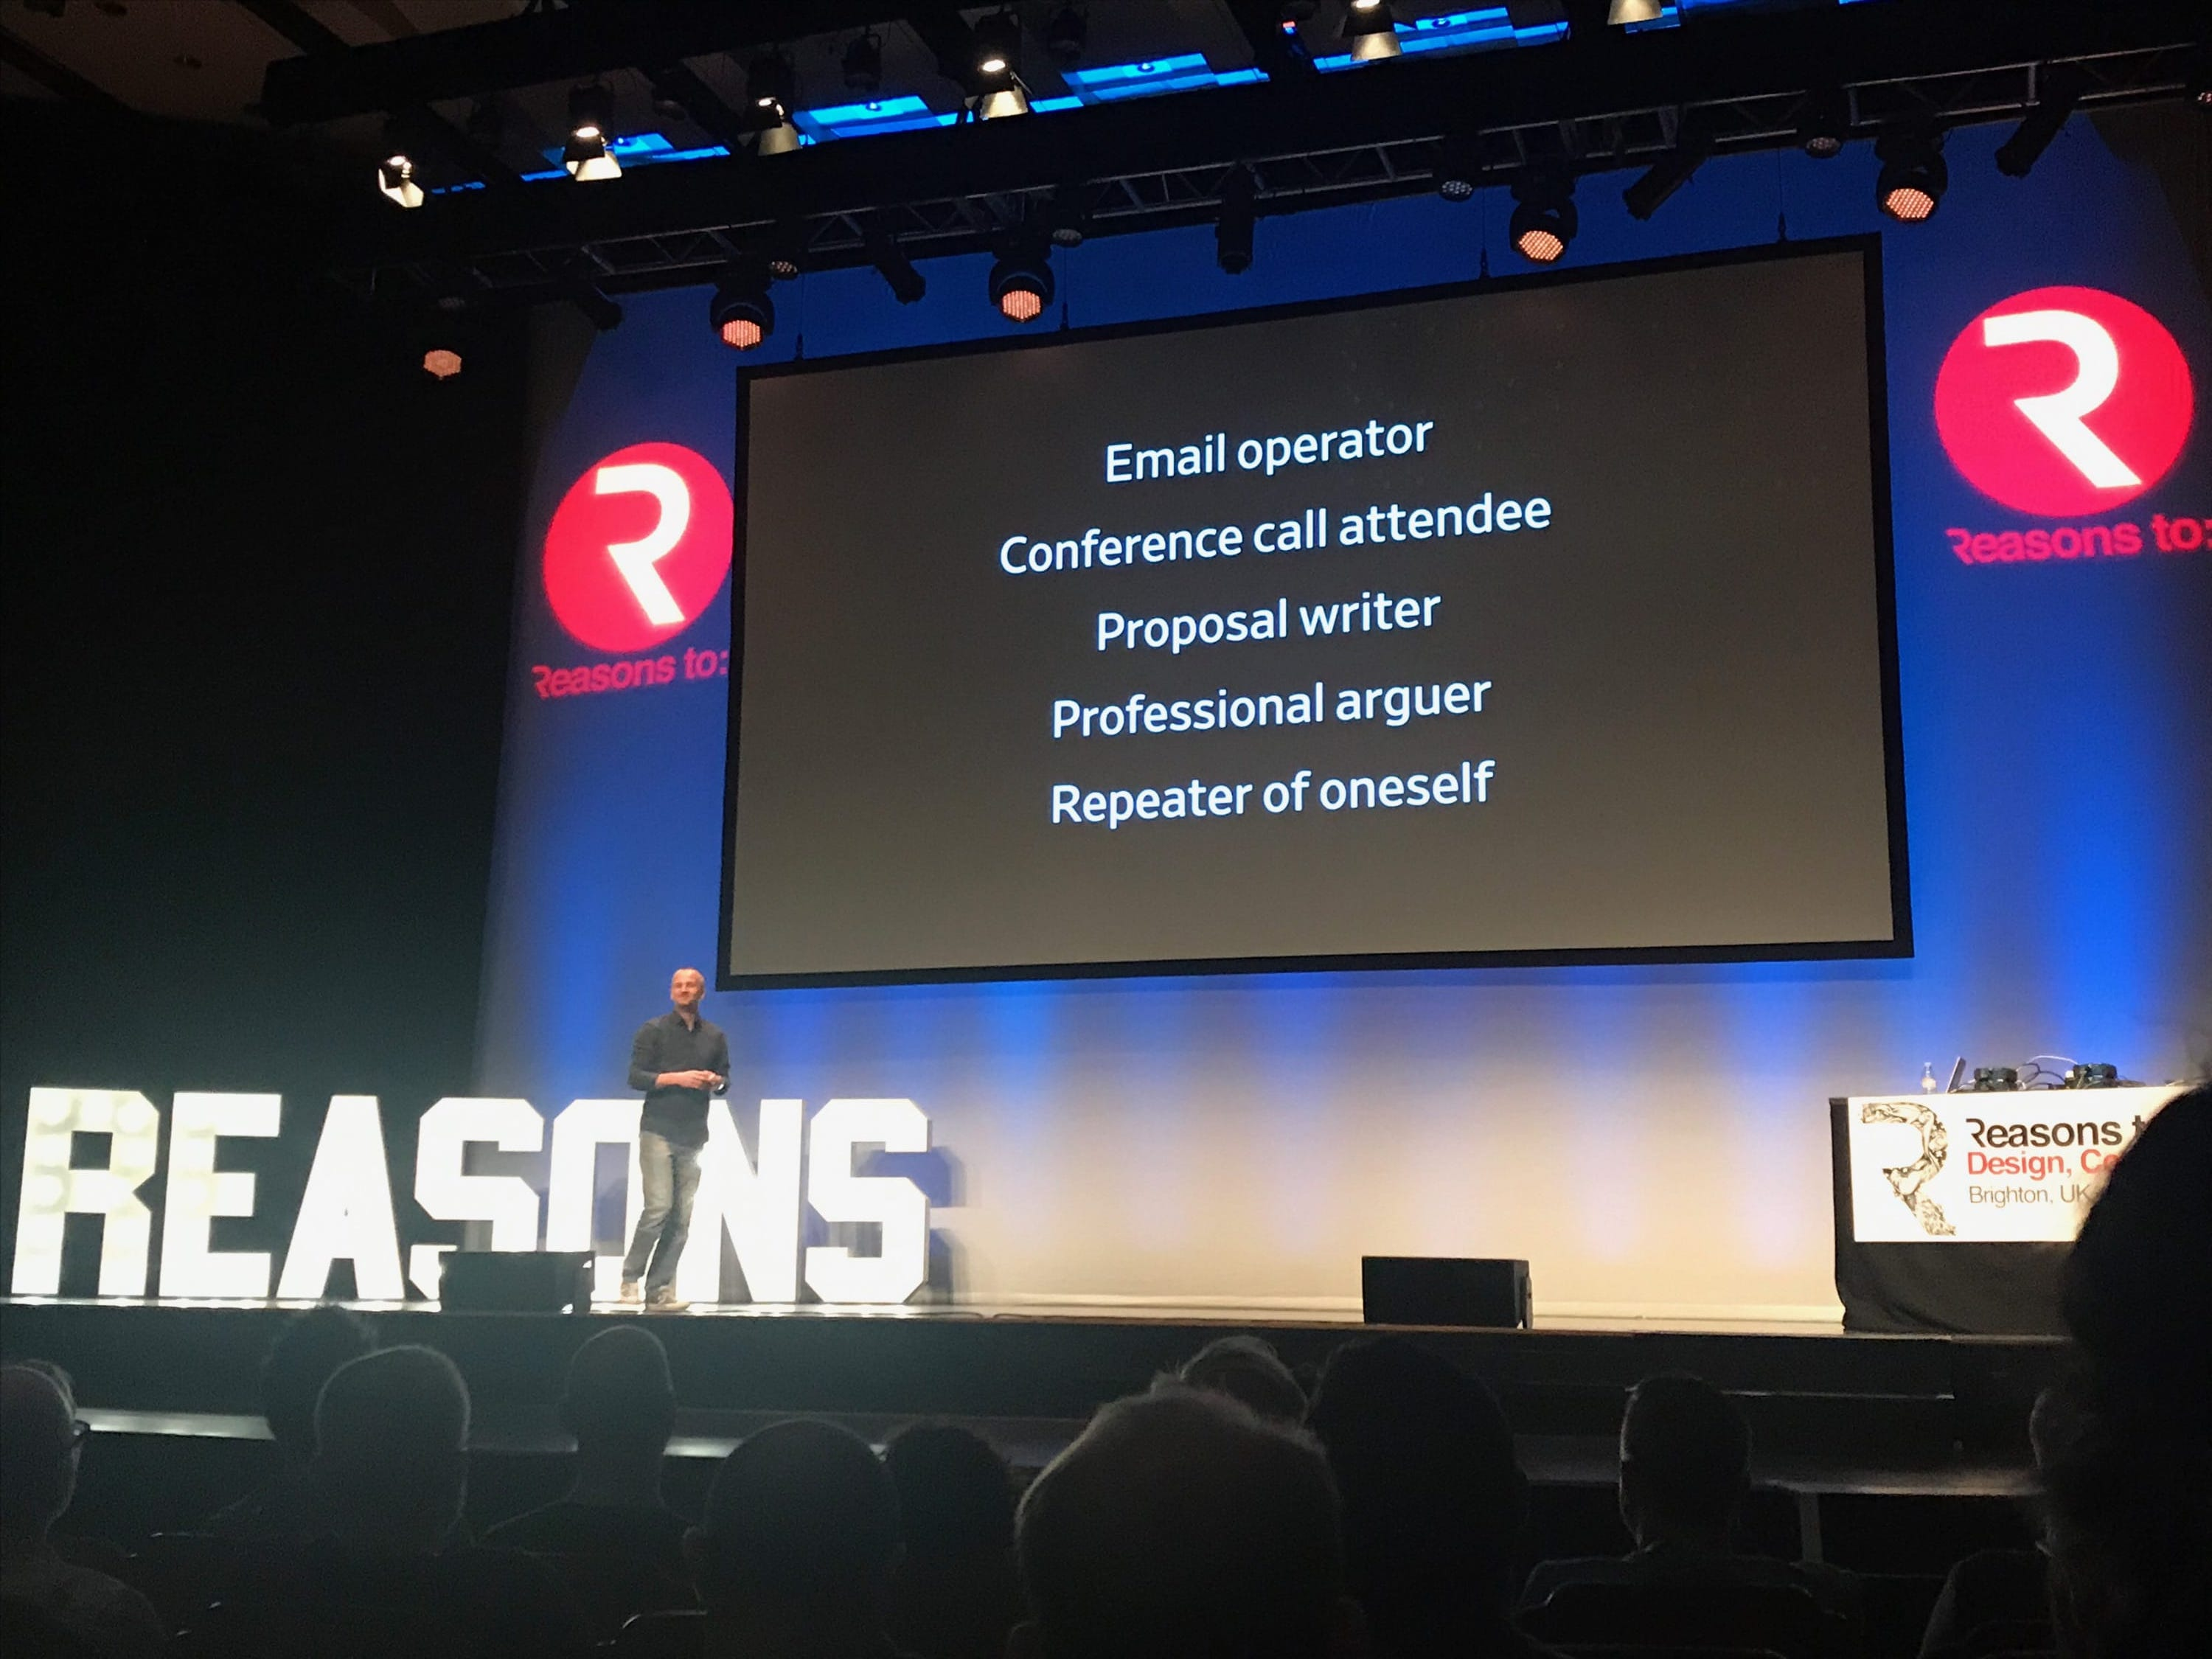 Mark Boulton on stage at Reasons To conference 2017